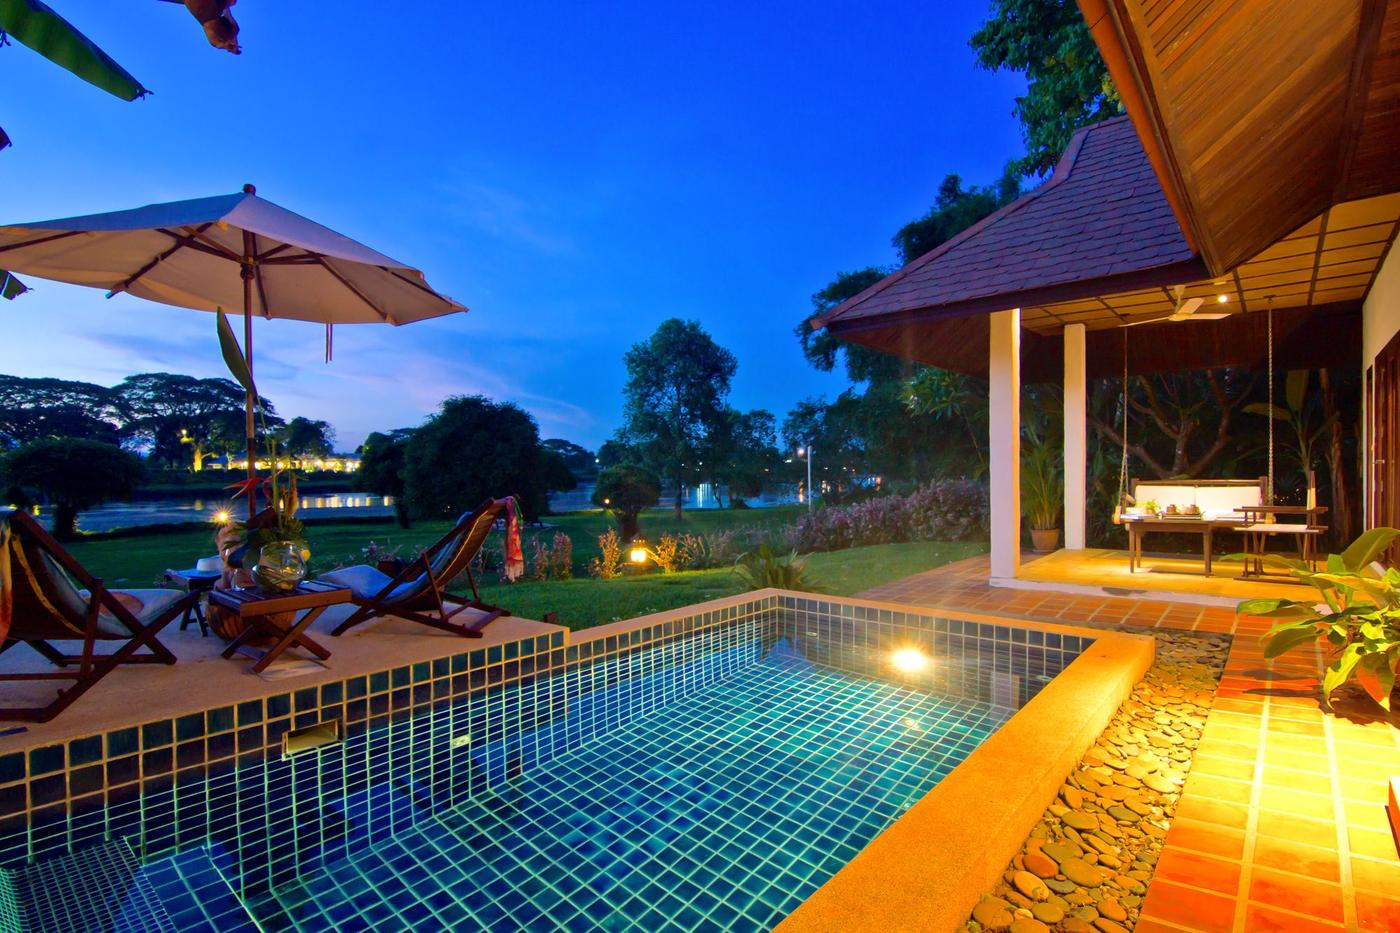 Pool Villa, The Legend Chiang Rai